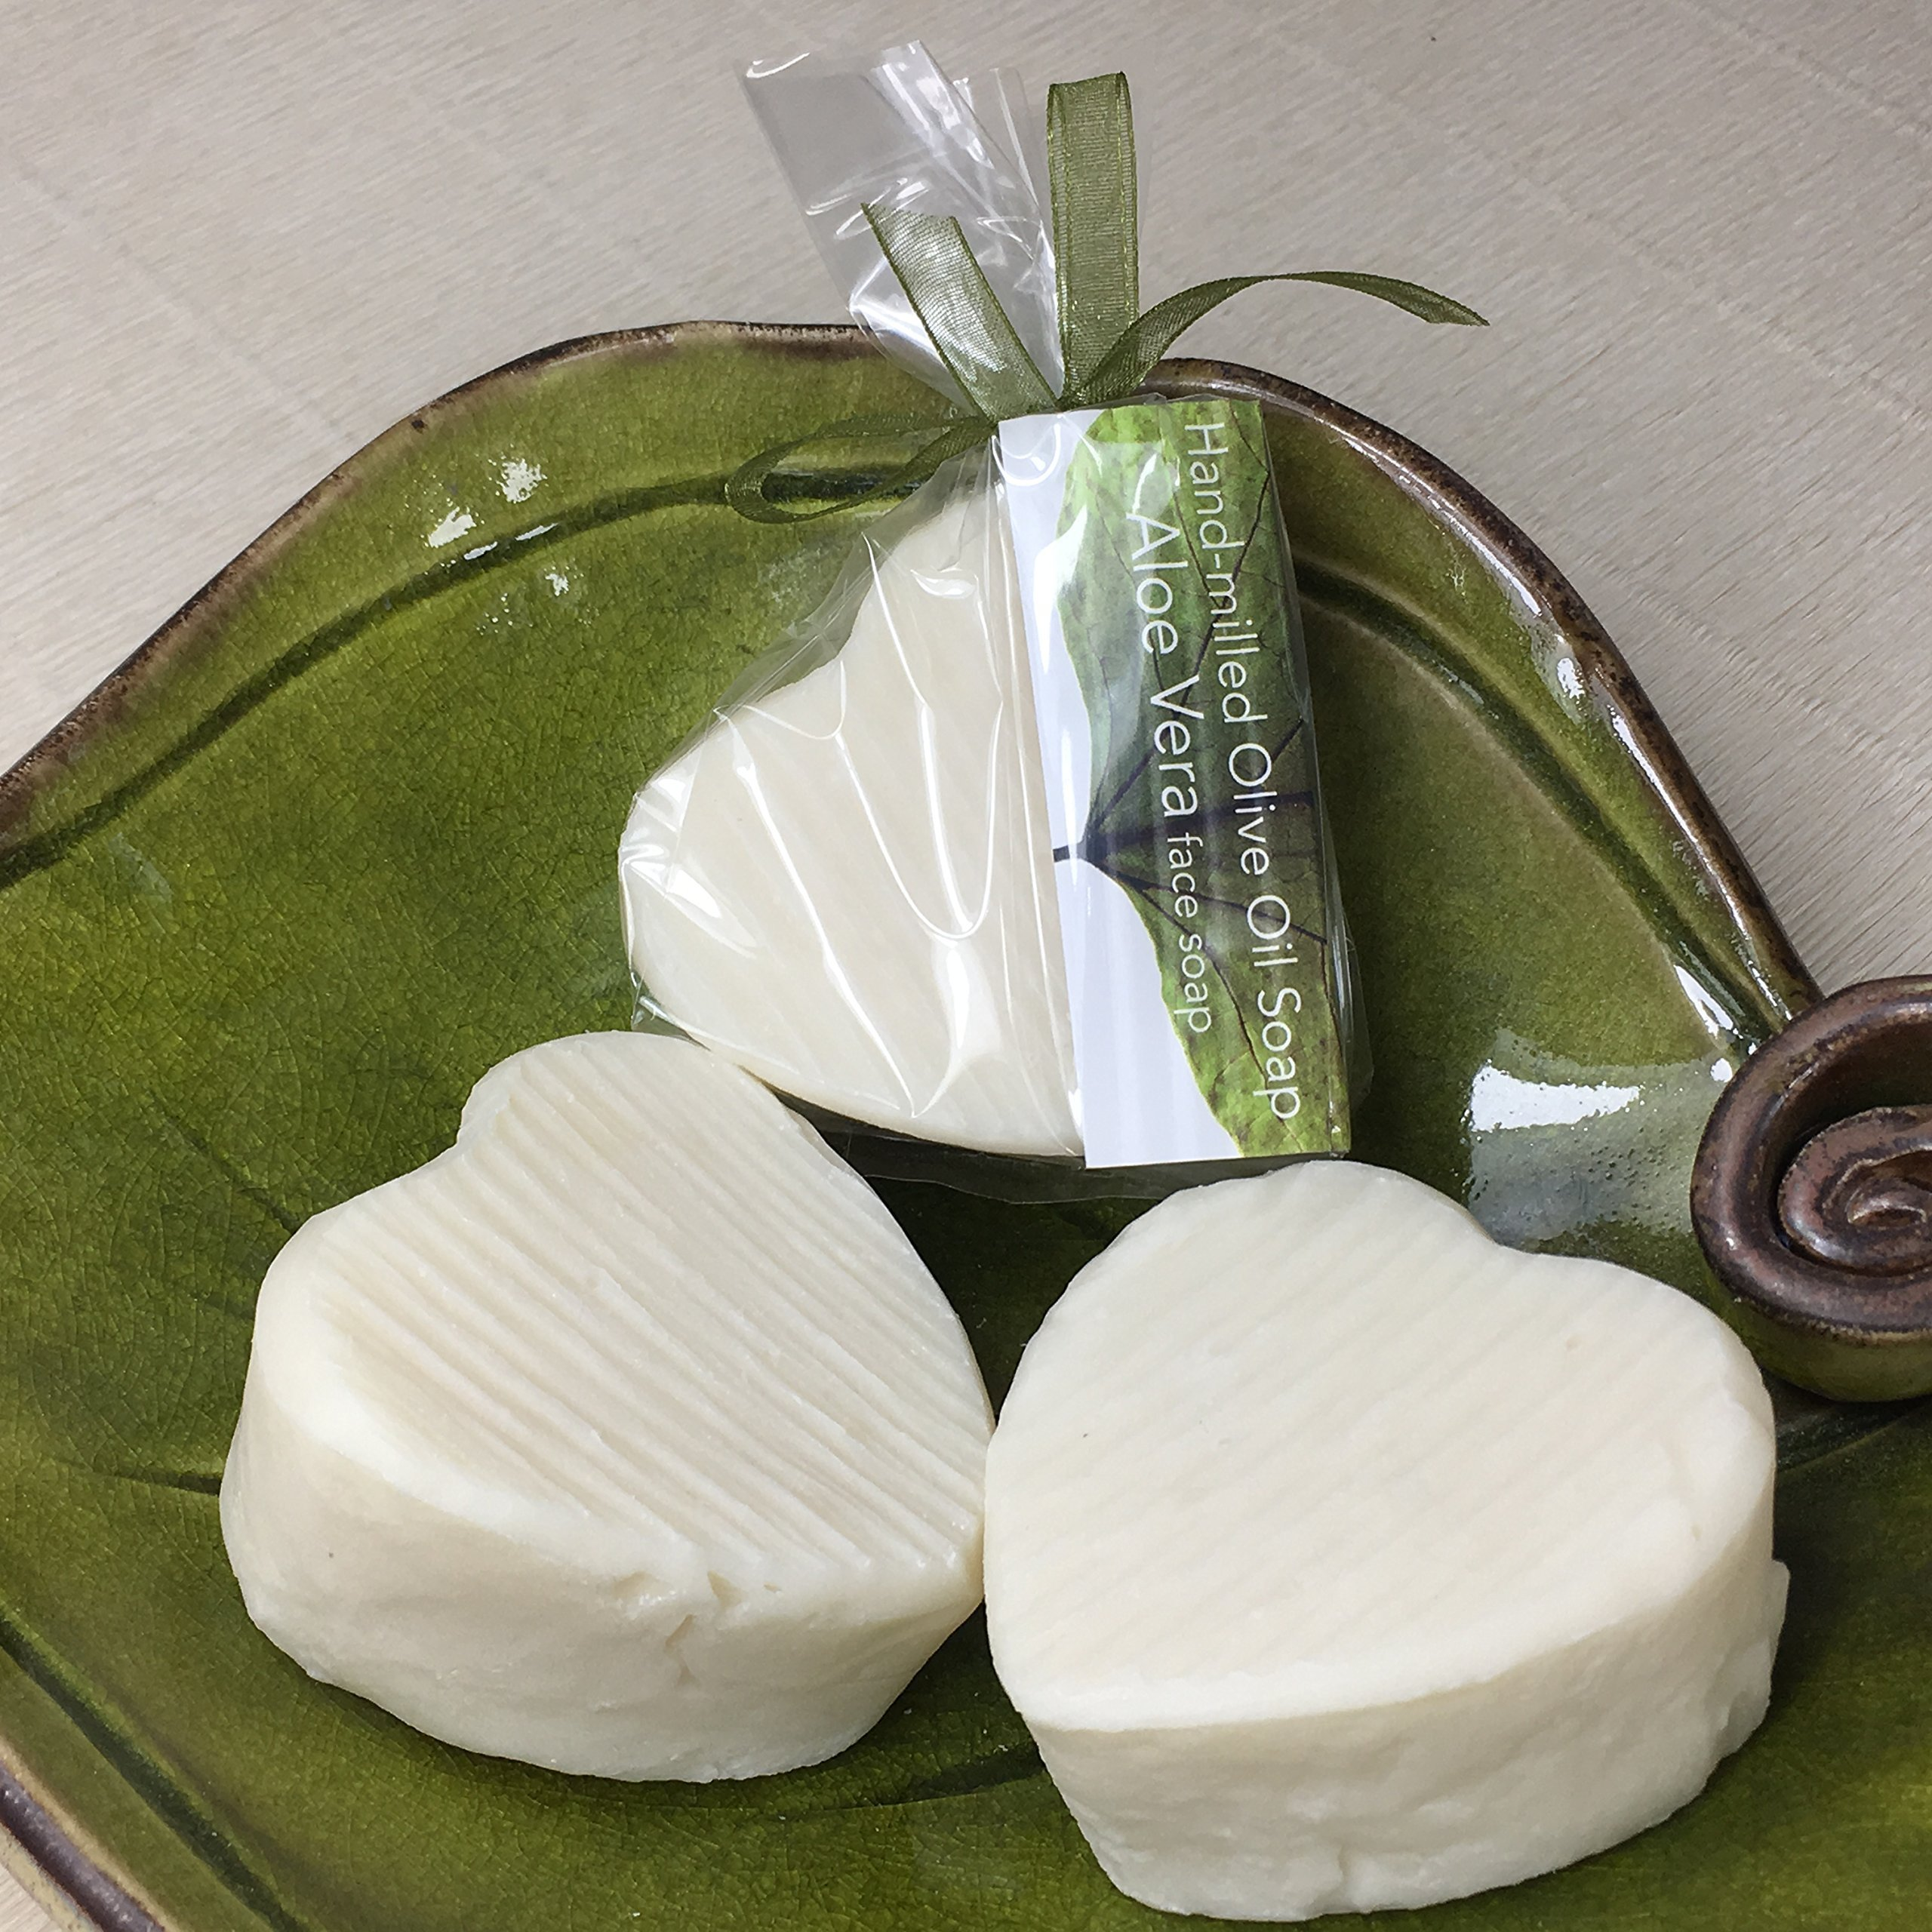 JANECKA Aloe Vera Heart Soap / Hand-milled Bath Bars / Gentle Unscented ( Set of 3 )